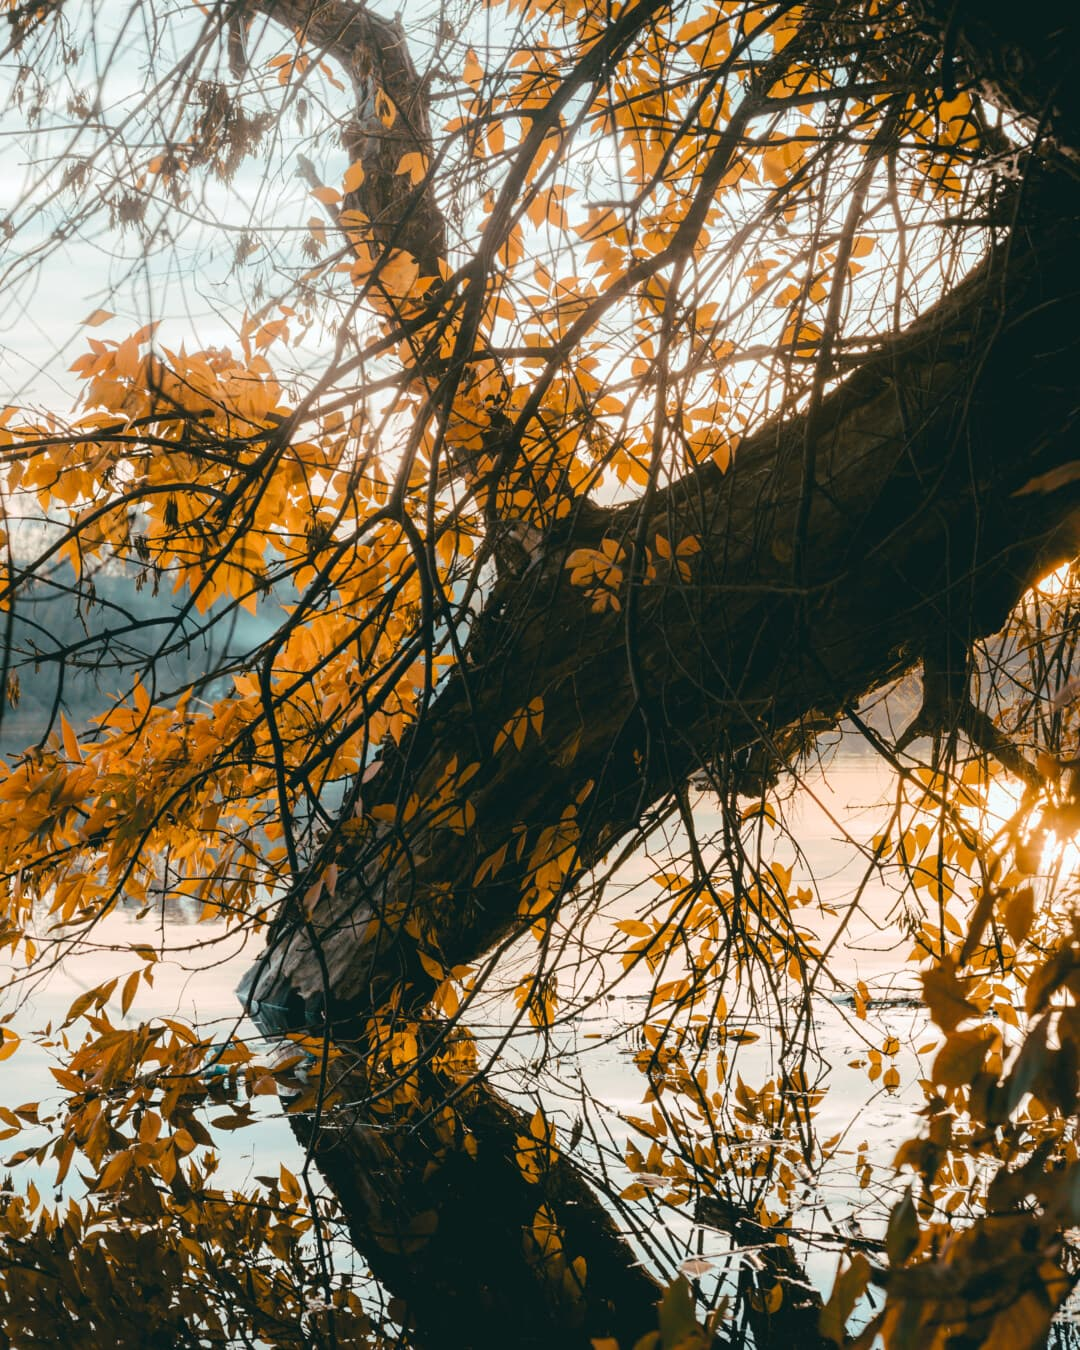 big, tree, riverbank, branches, color, orange yellow, leaves, leaf, wood, autumn